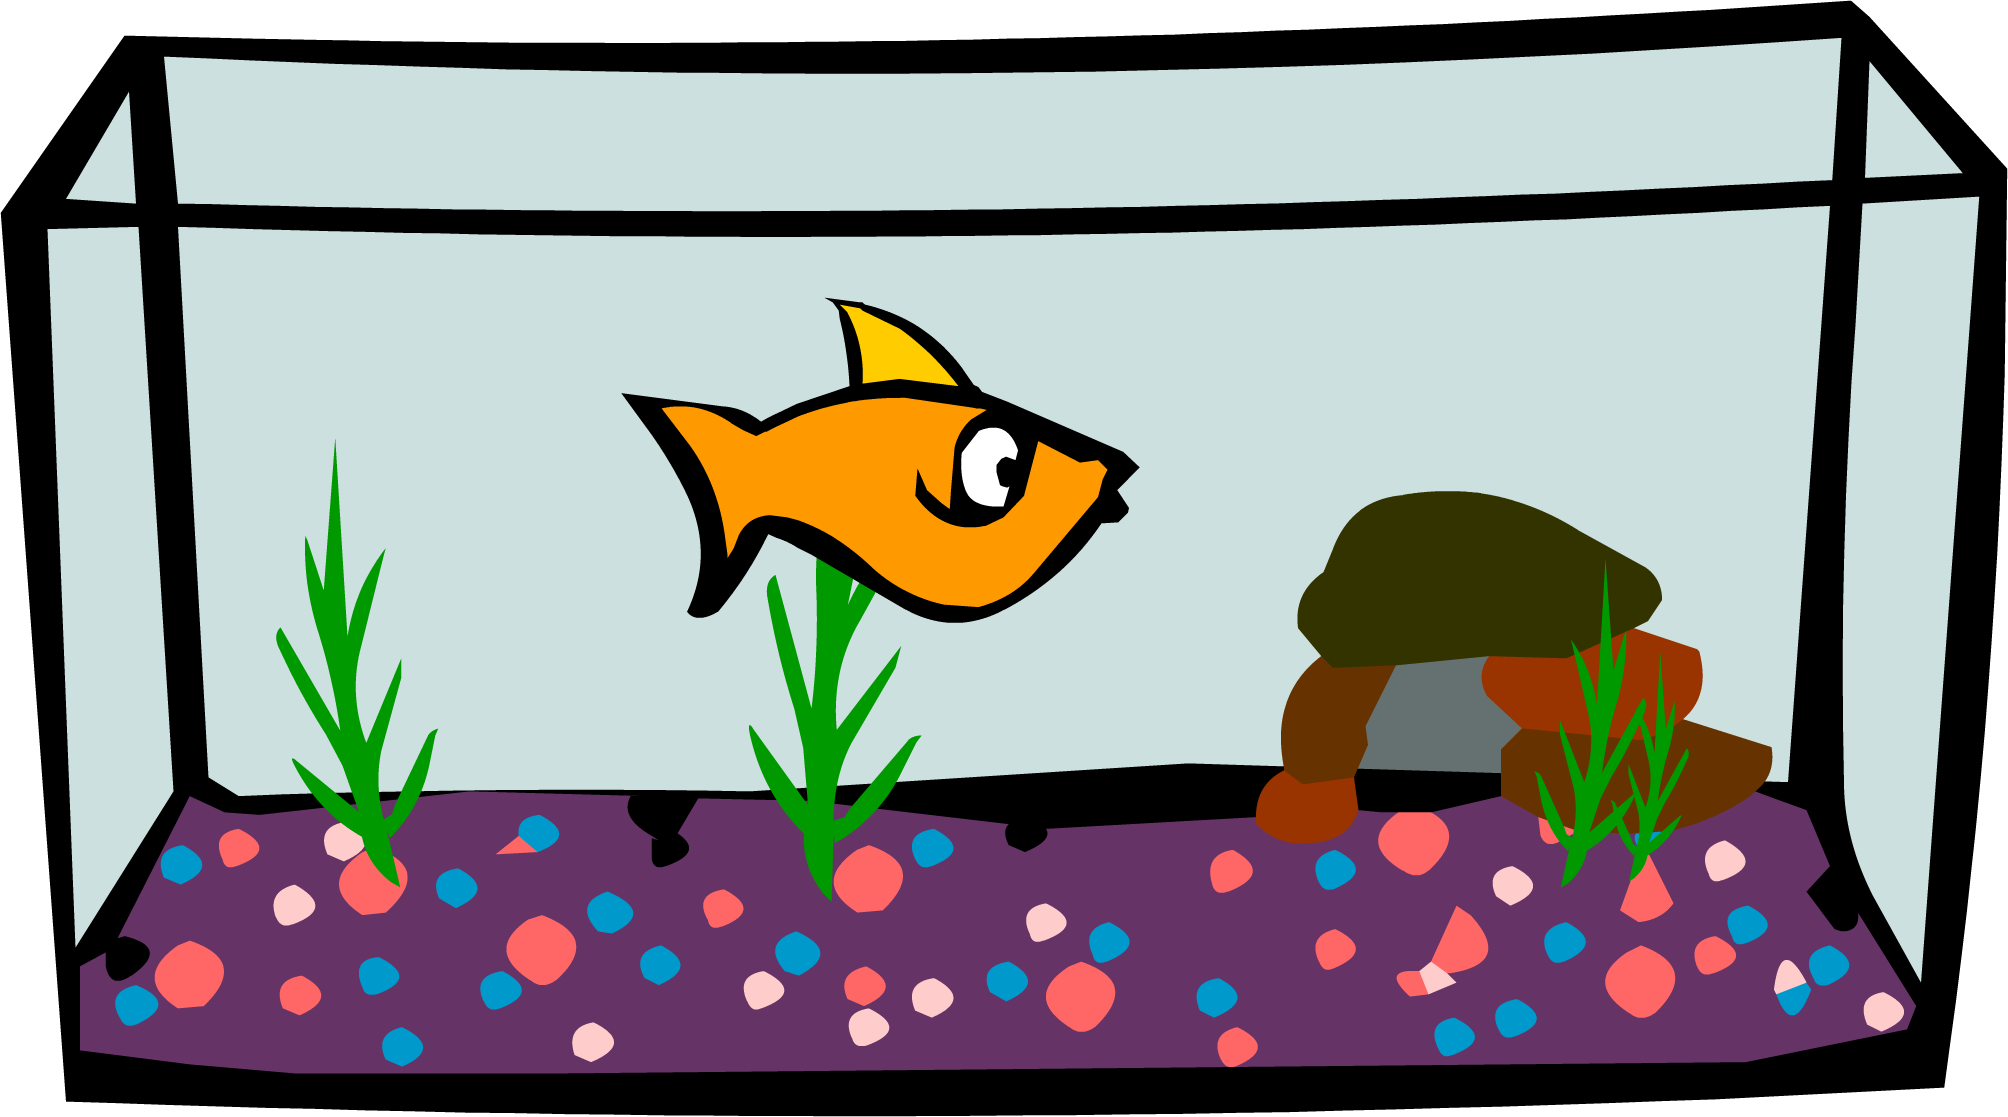 Fish tank clipart image library library Fish Tank Clipart | Free download best Fish Tank Clipart on ... image library library